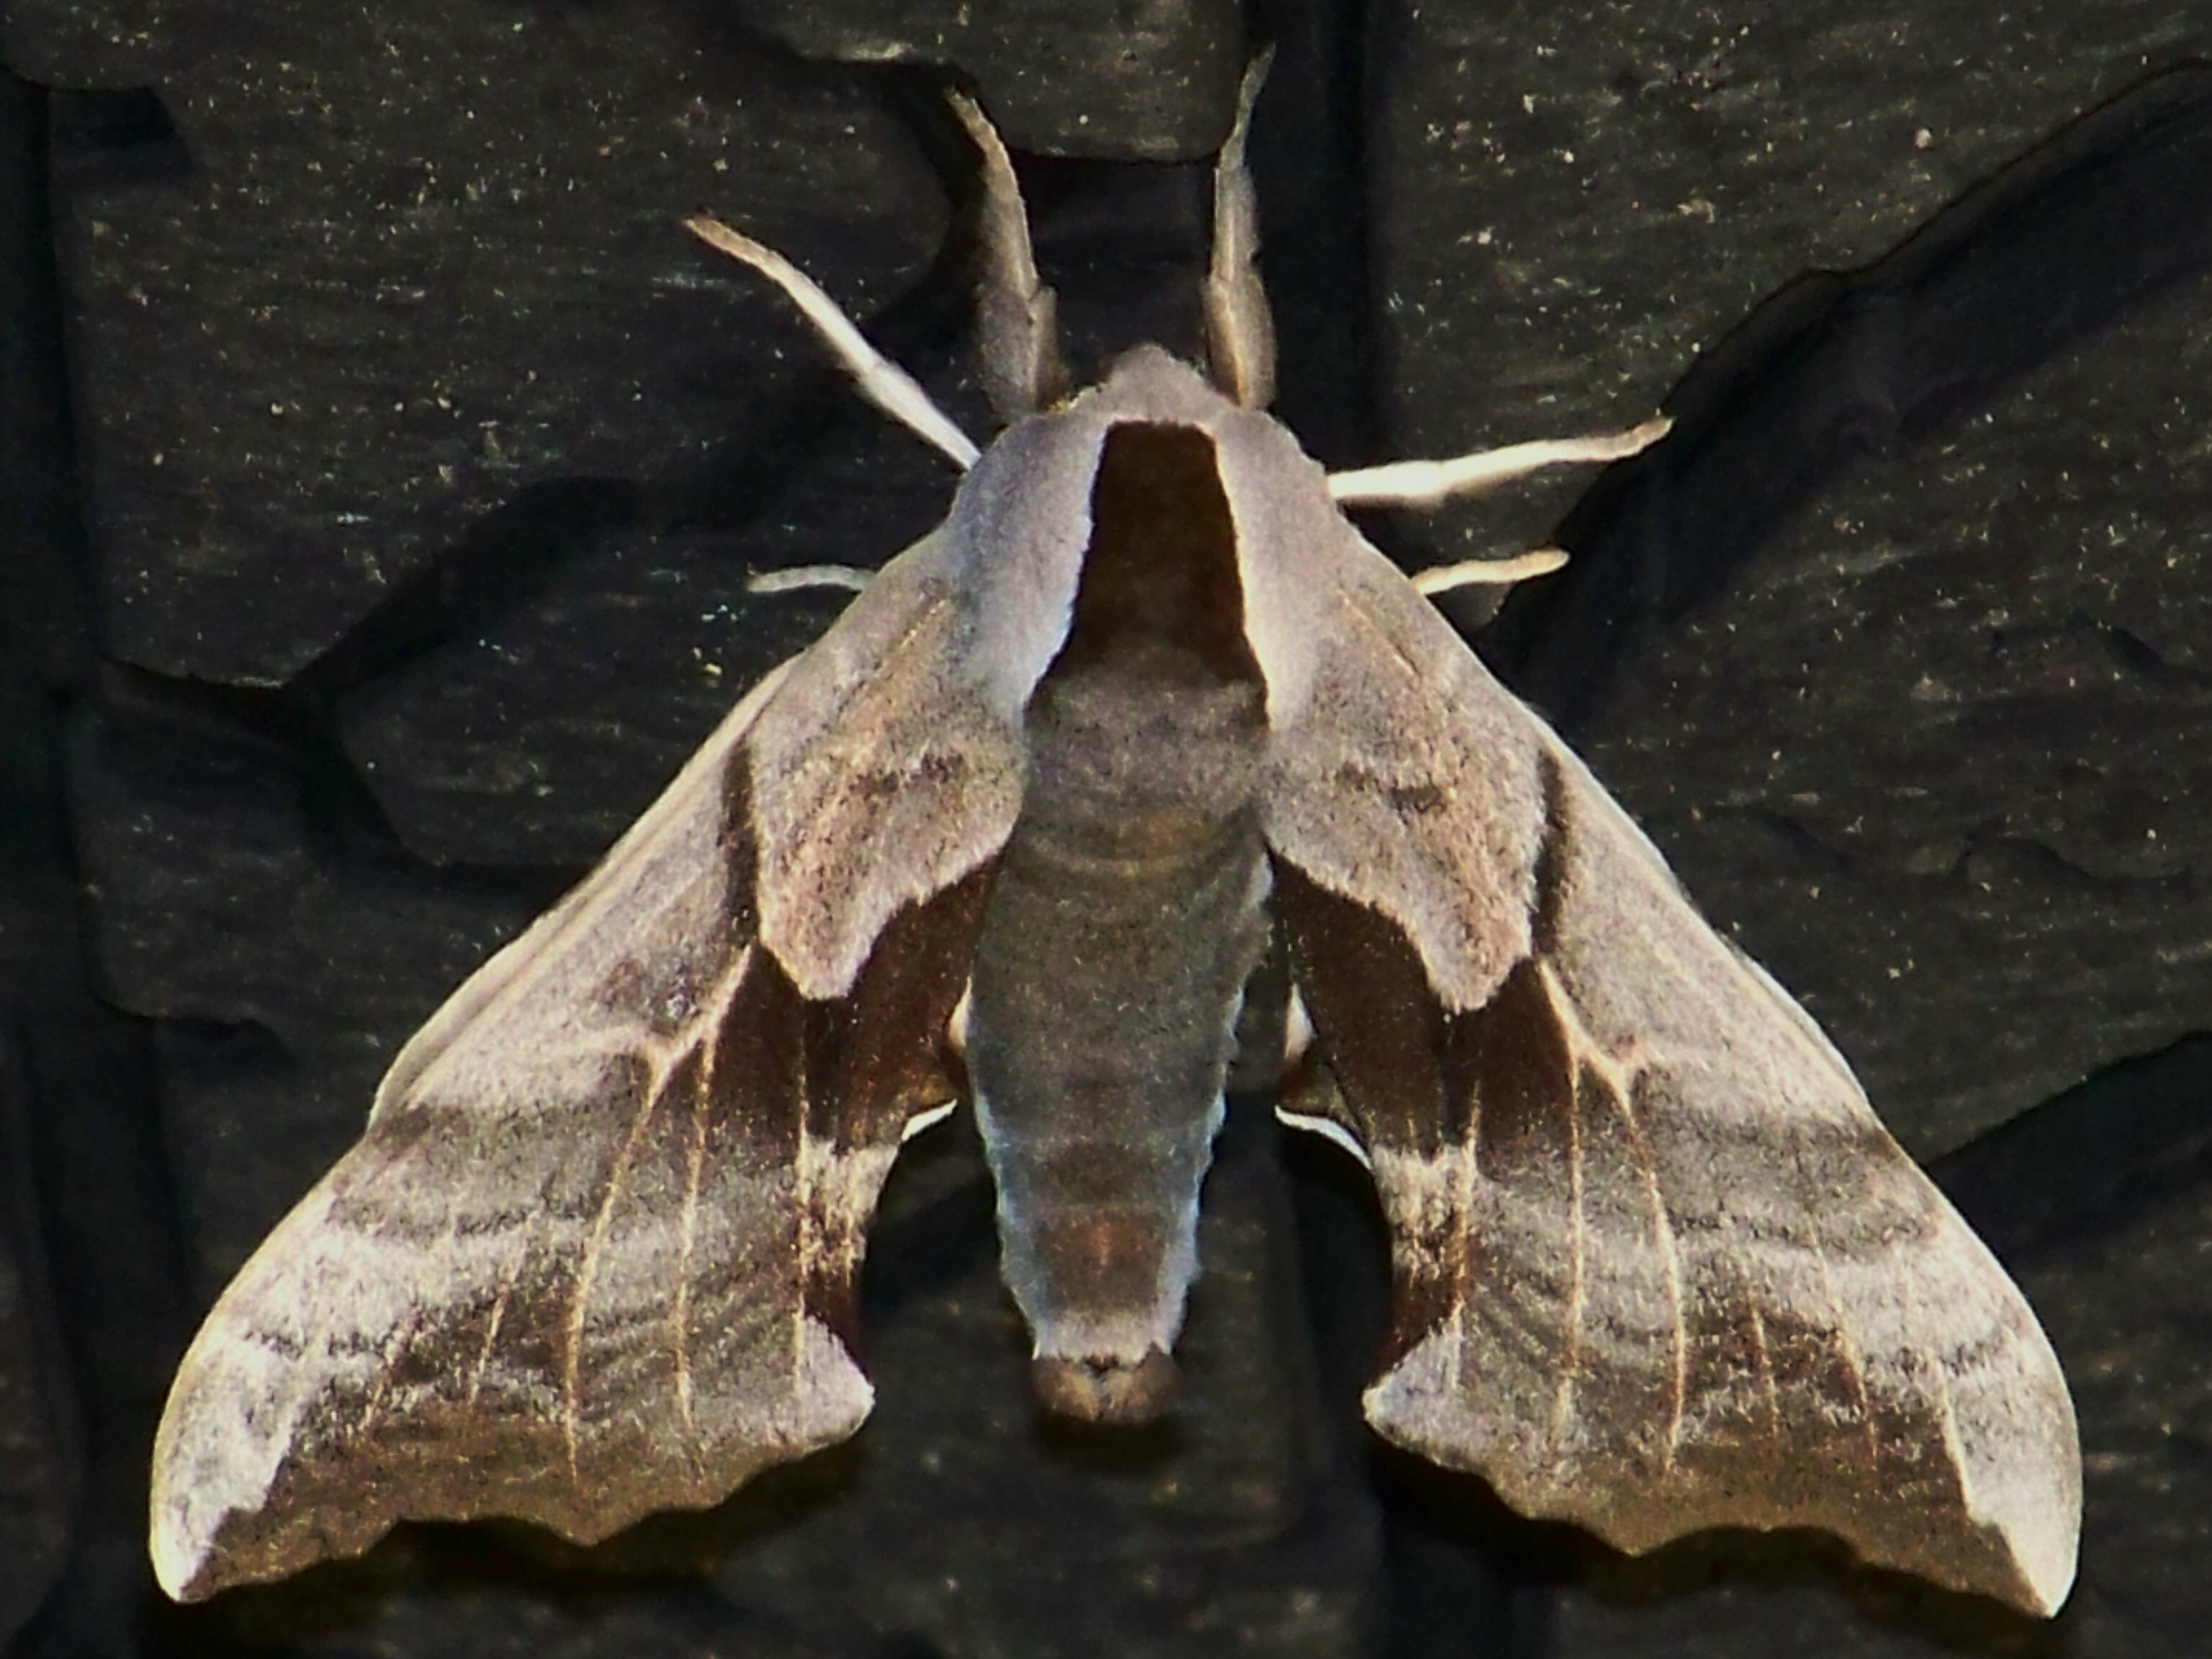 Unknown Moth Image 3